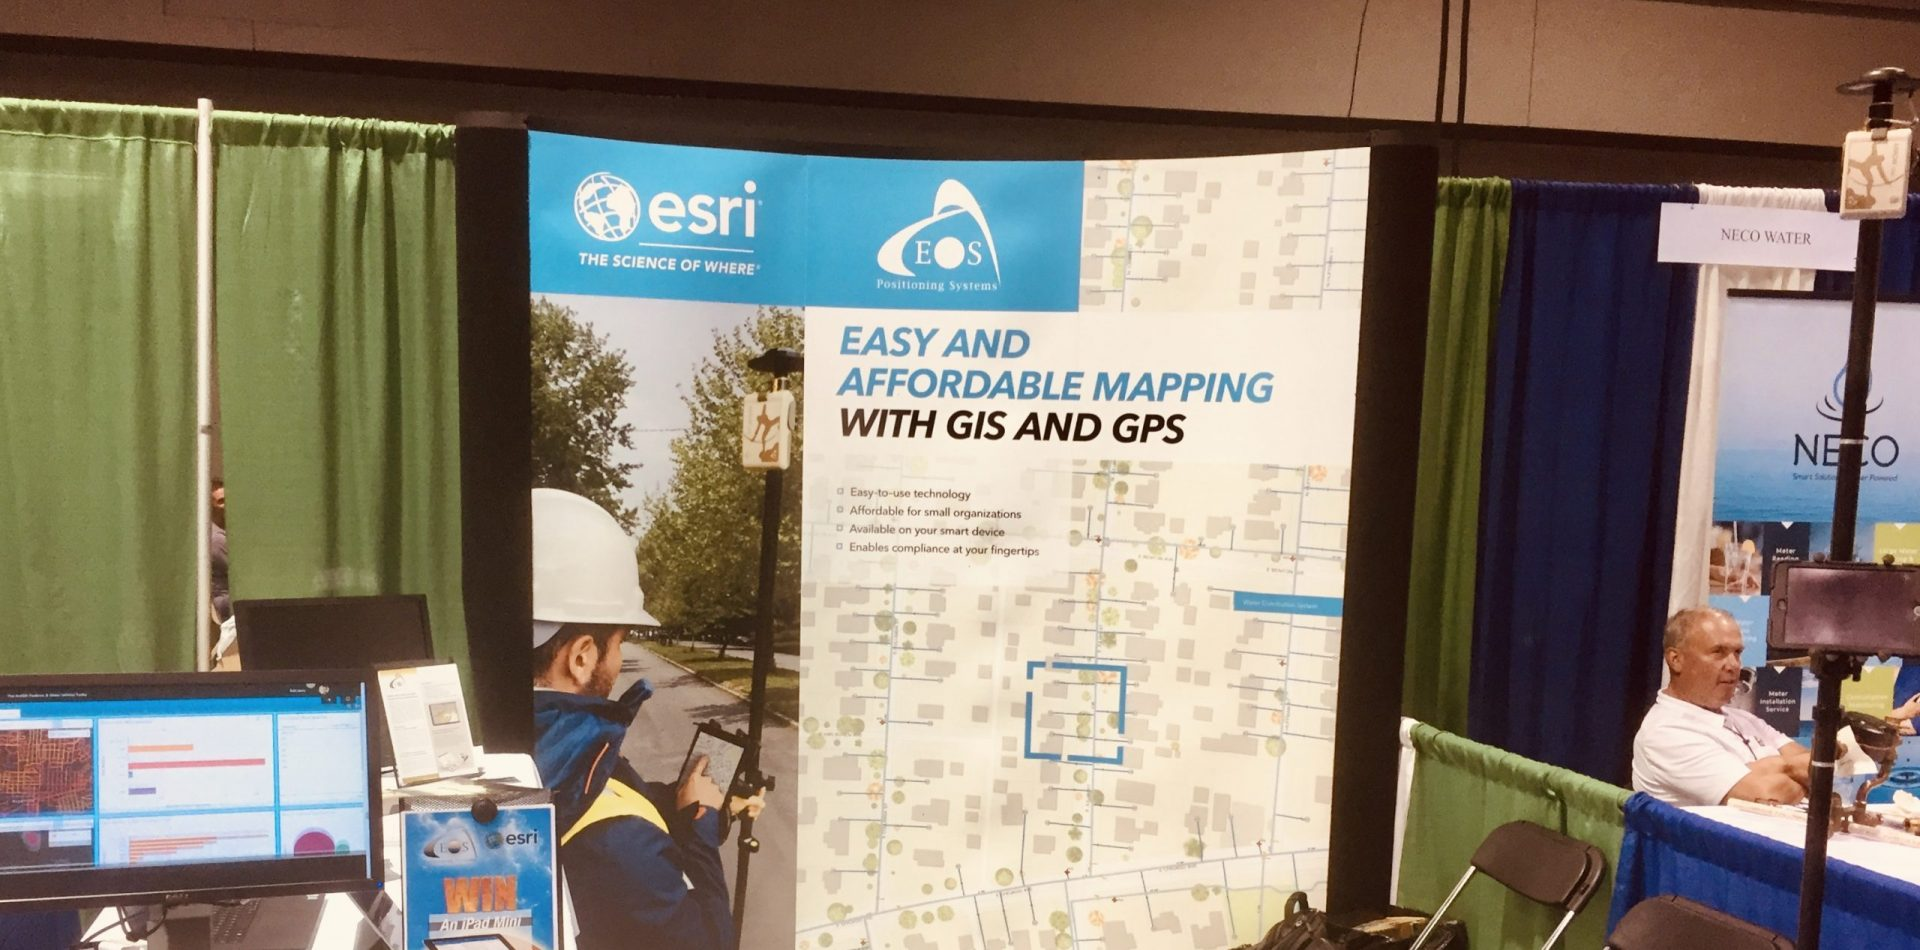 KY Rural Water Association Eos Esri Water booth 2019-08-26 18.22.10-1